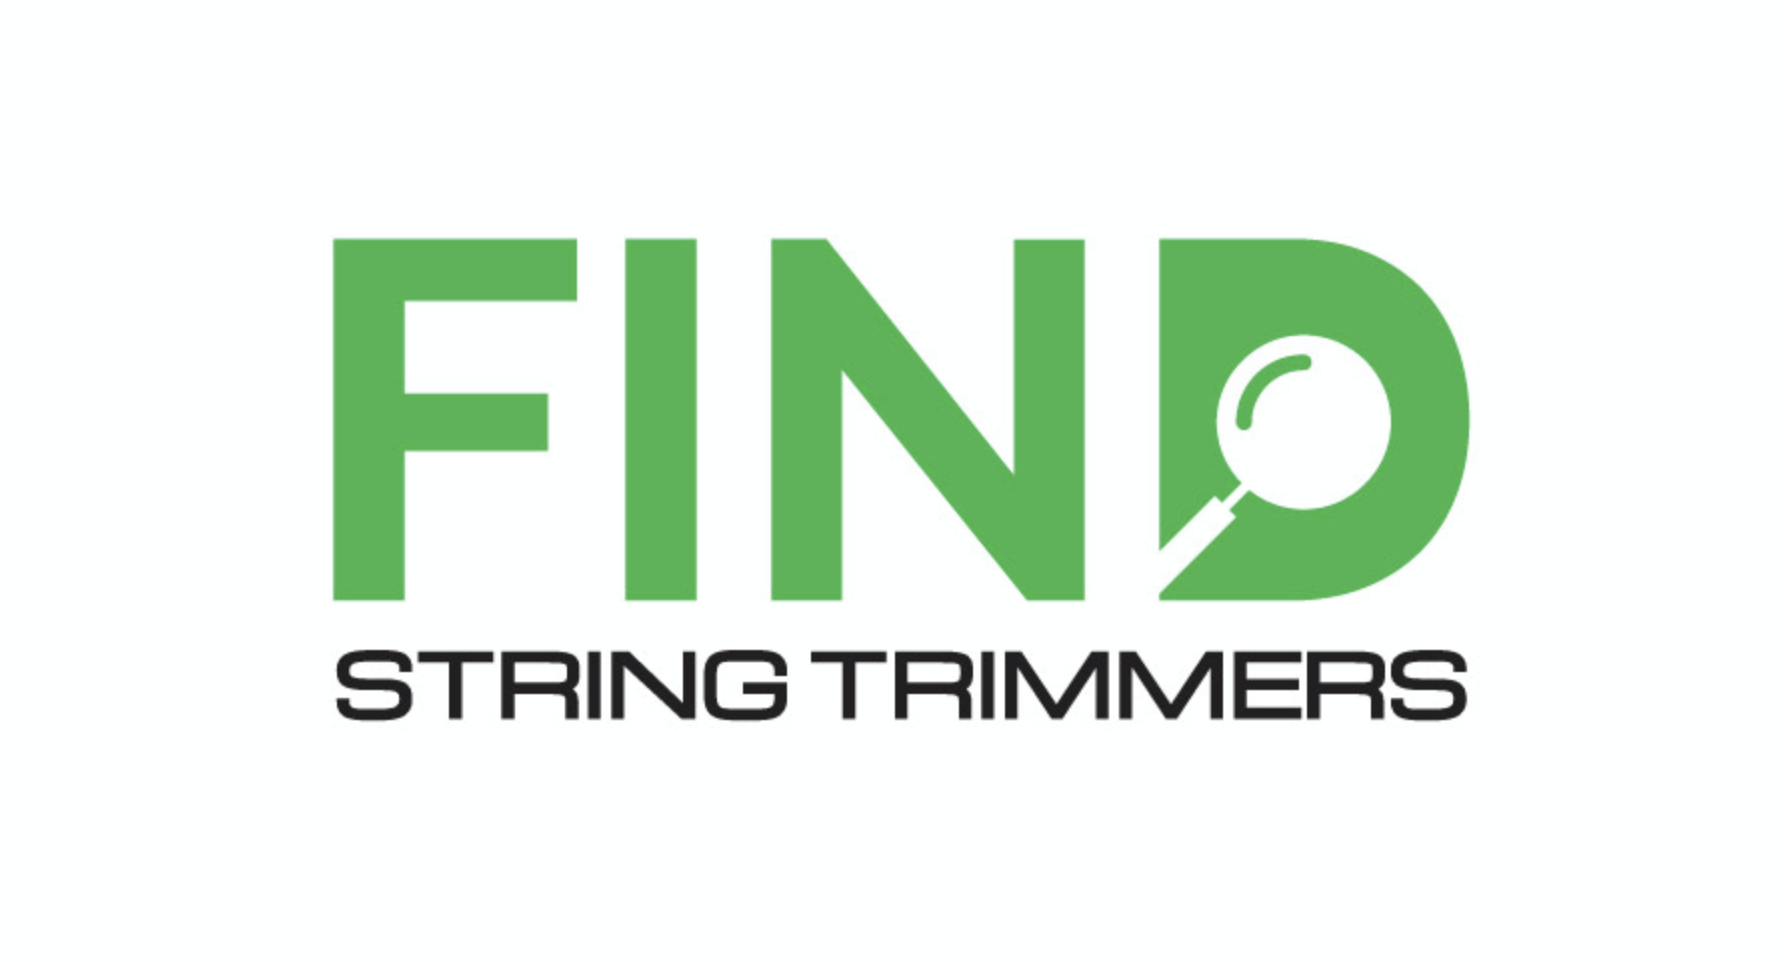 Find Reliable String Trimmer Reviews and the Latest String Trimmers Available on the Market at FindStringTrimmers.com